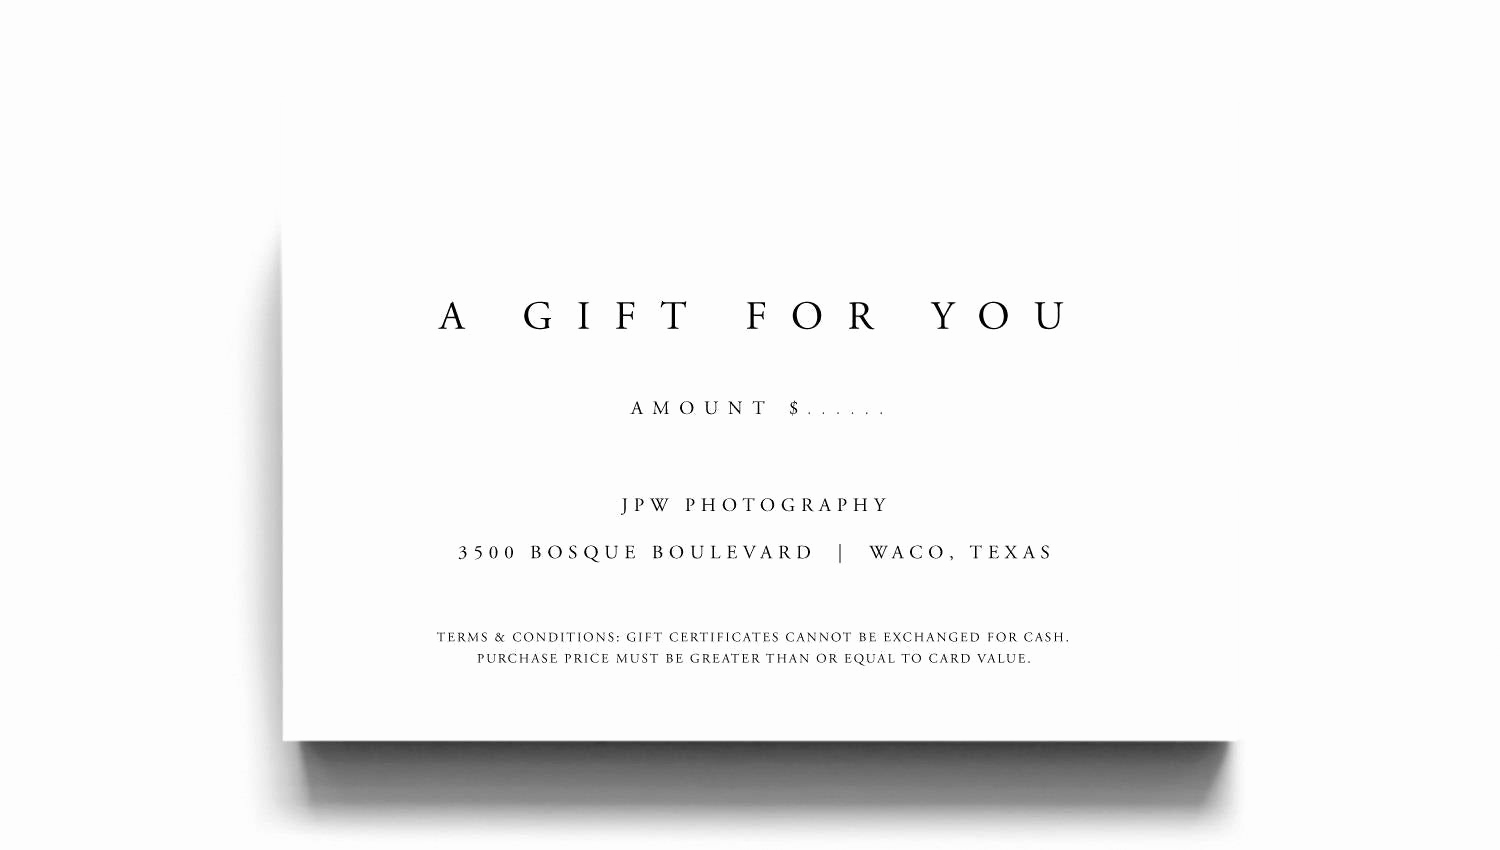 Gift Certificate Template Printable Unique Gift Certificate Template A Gift for You Gift Voucher